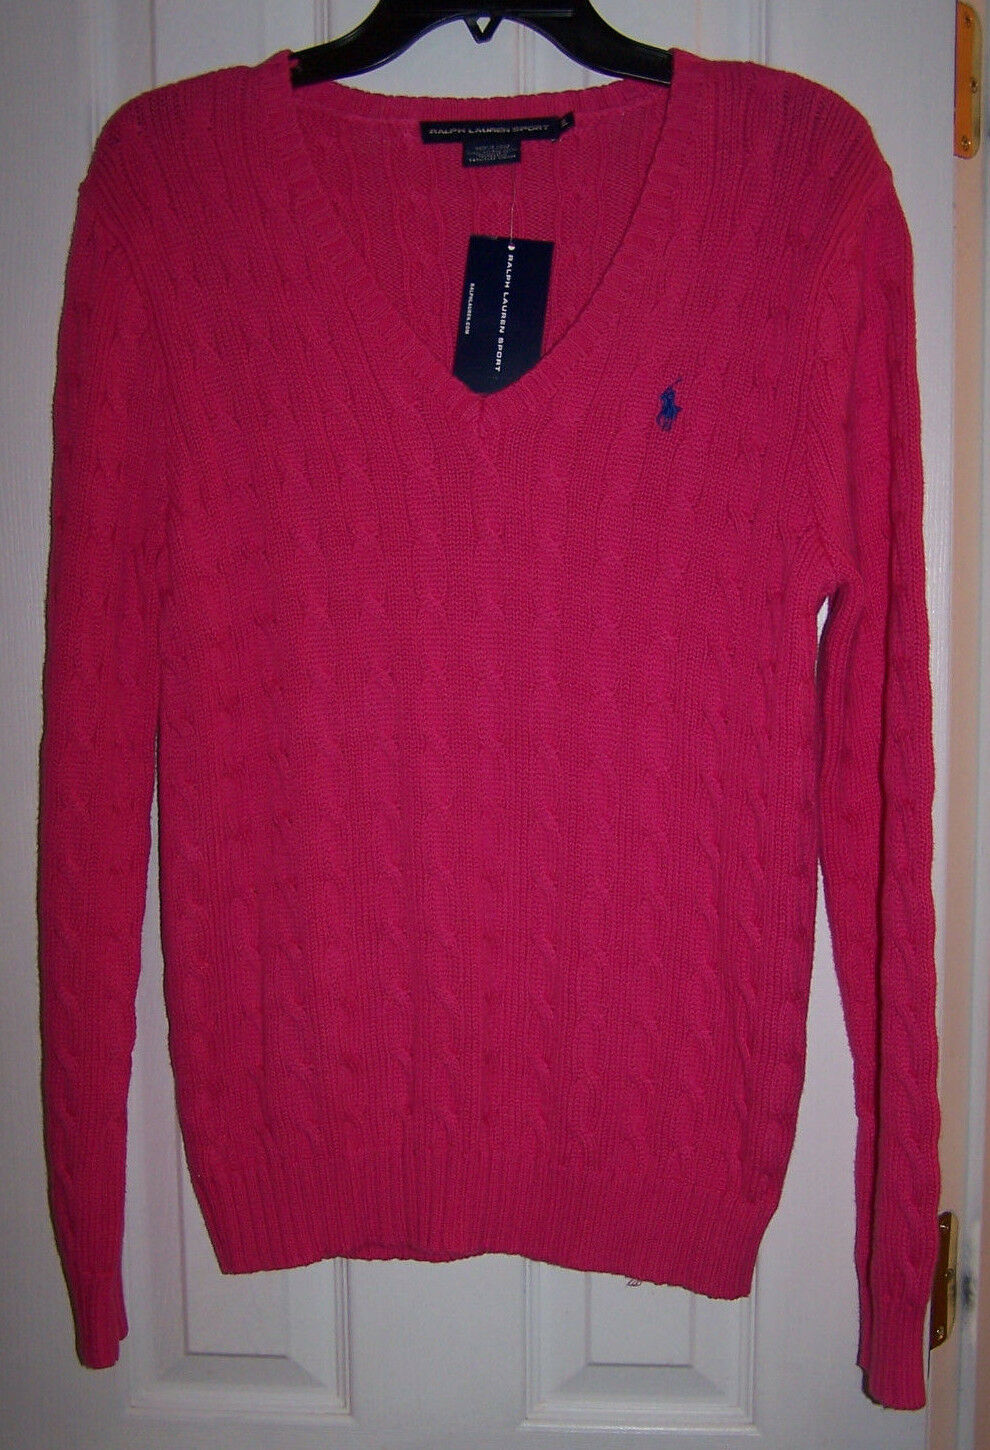 RALPH LAUREN SPORT LONG SLEEVE CABLE CABLE CABLE KNIT GRAND PINK  SWEATER TOP SZ XL NWT d7e2f9